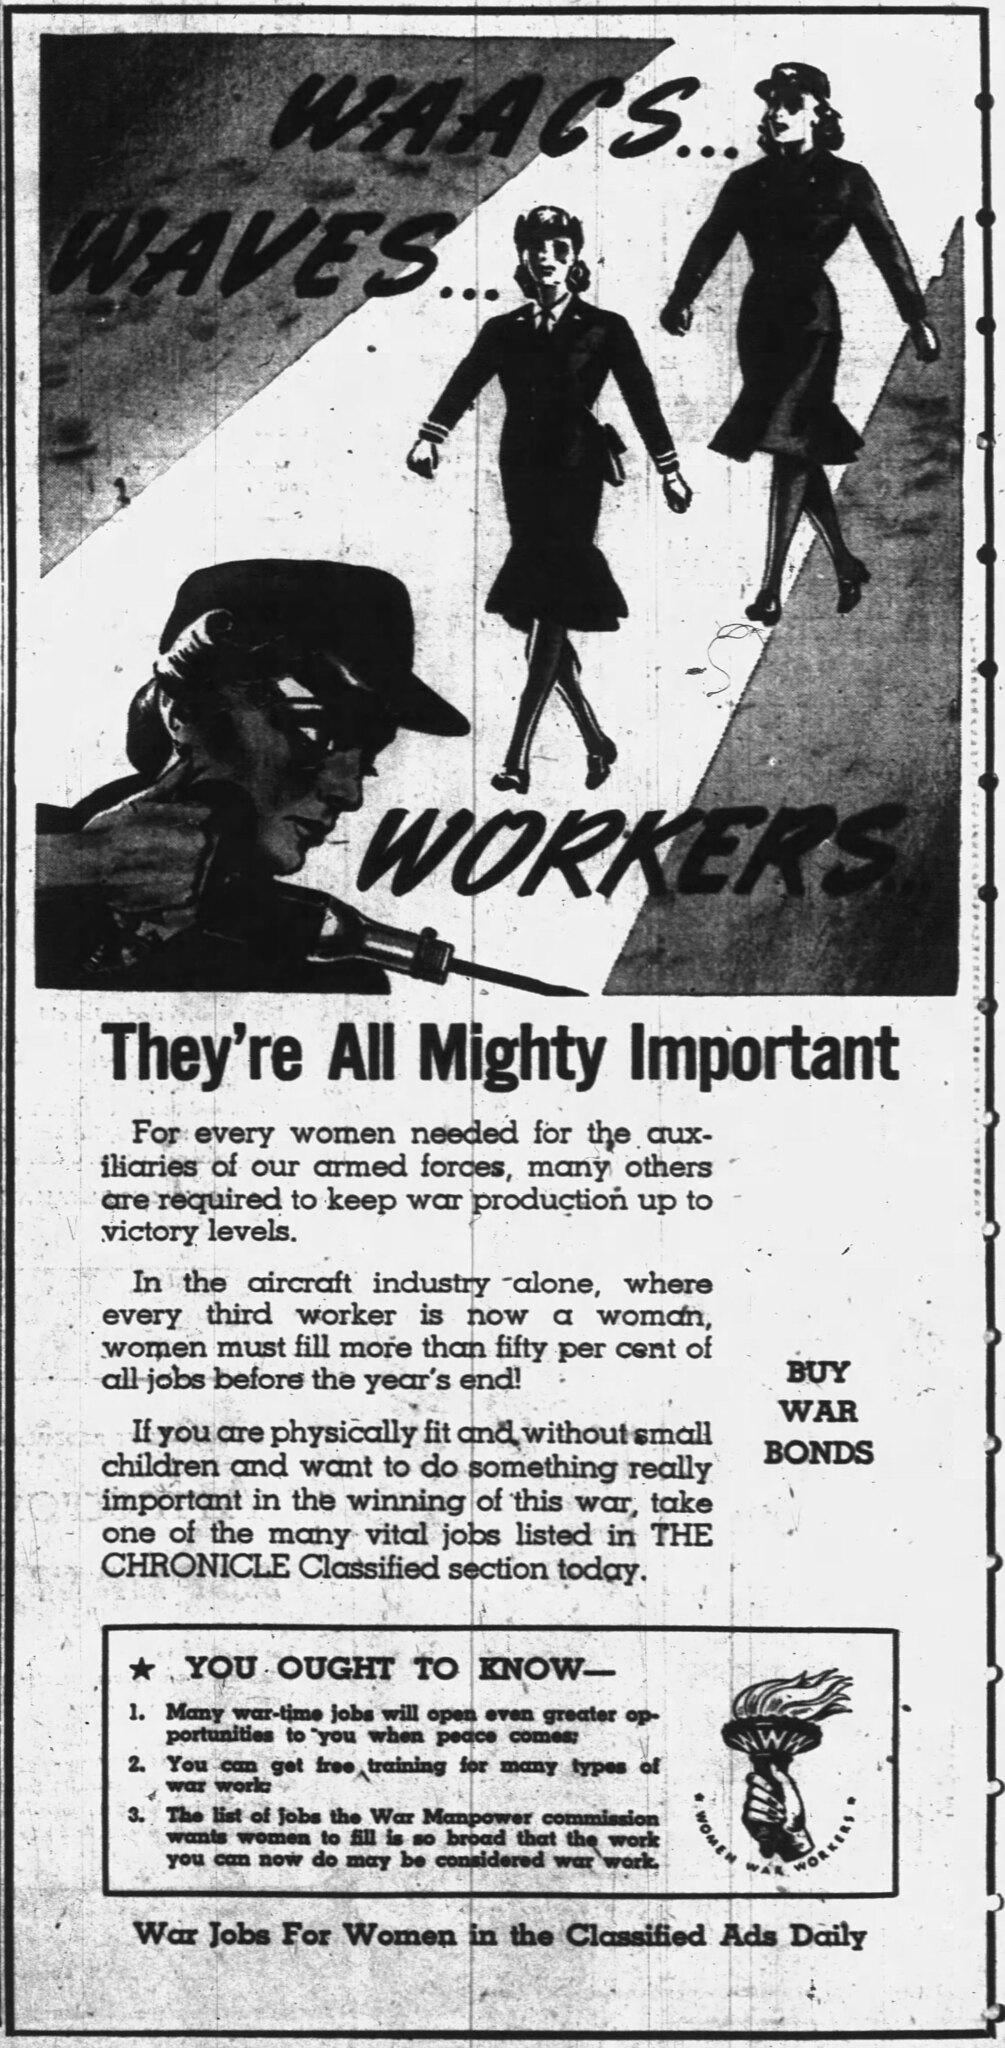 Ad for War Jobs for Women